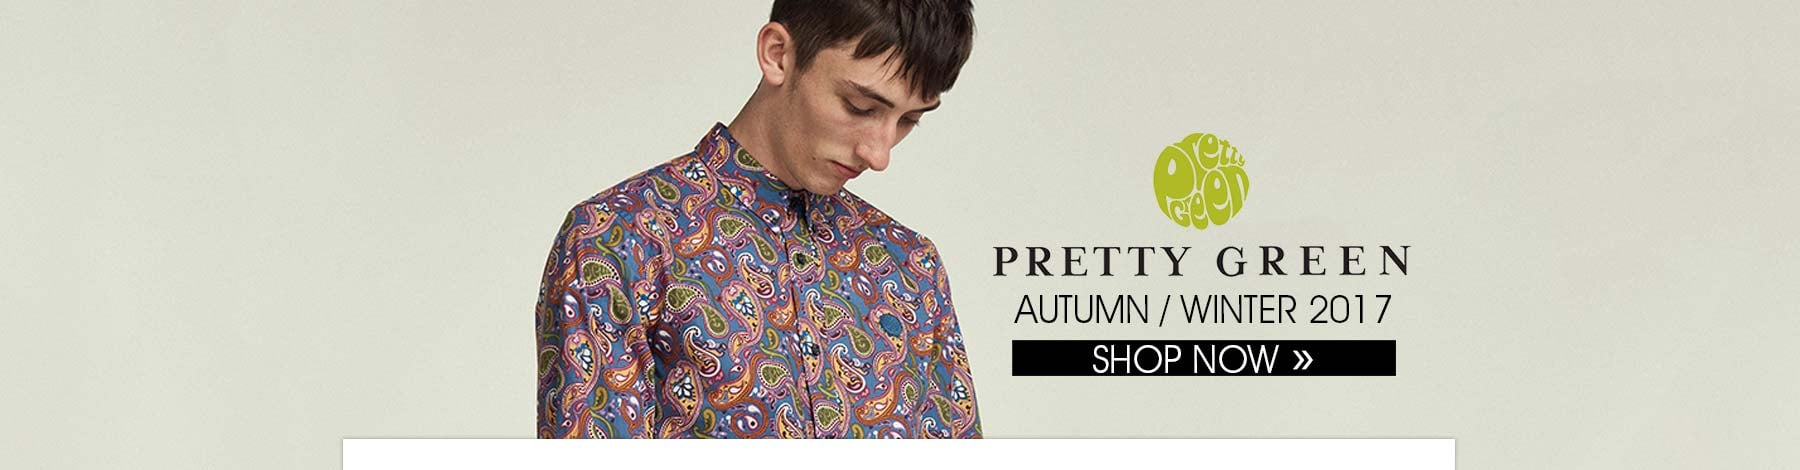 Pretty Green Autumn Winter 2017